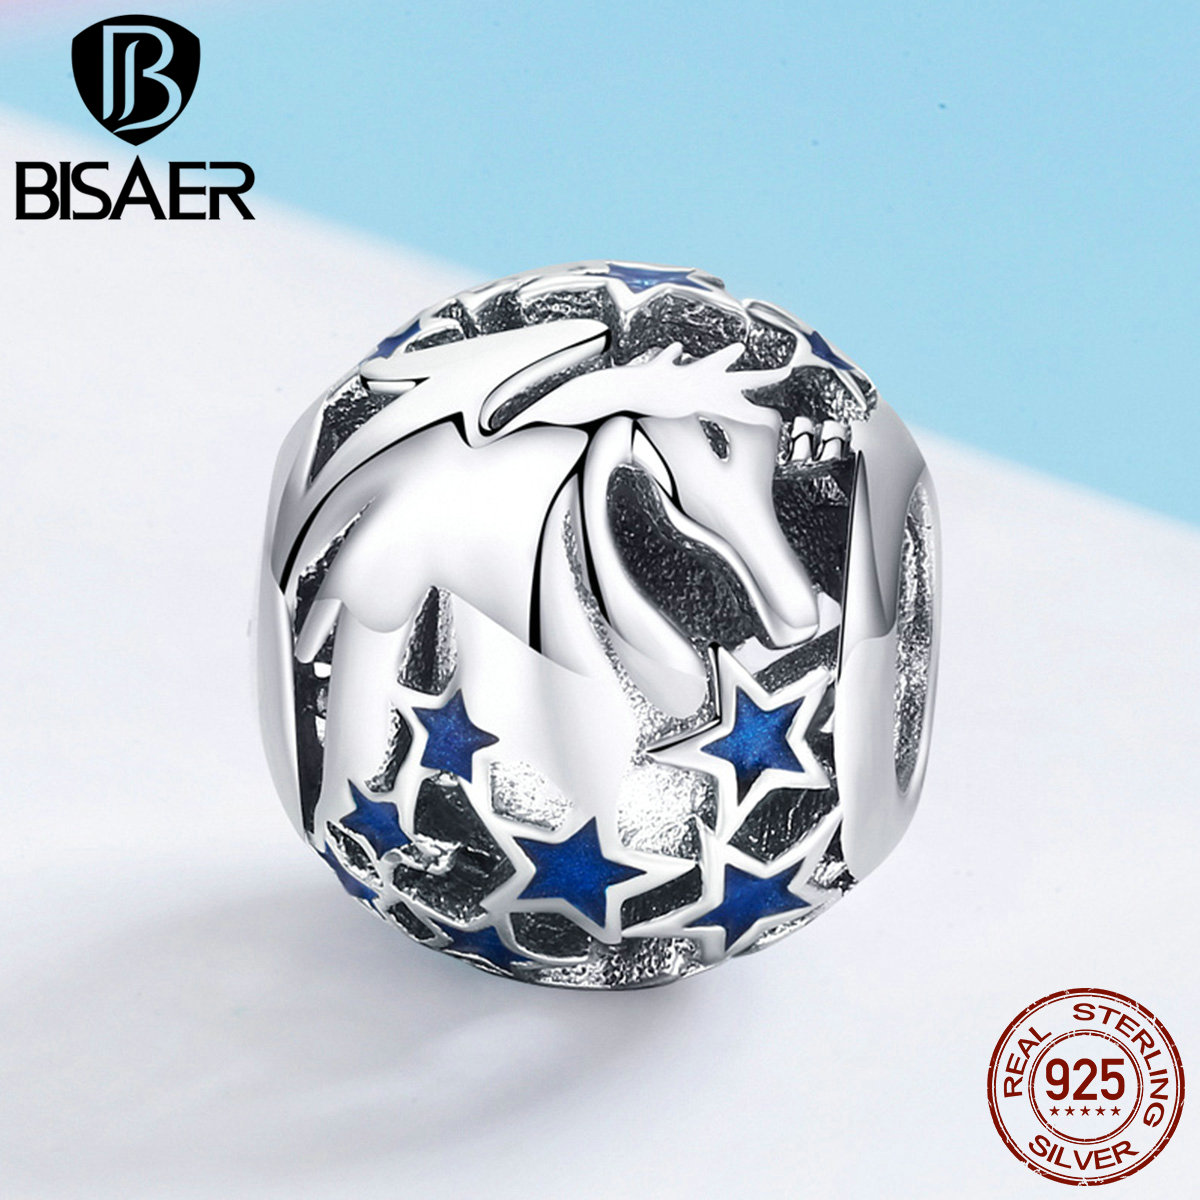 BISAER Beads 925 Sterling Silver Enamel Stars Unicorn Licorne Round Charm for Women Jewelry Making Fashion Accessories GXC935